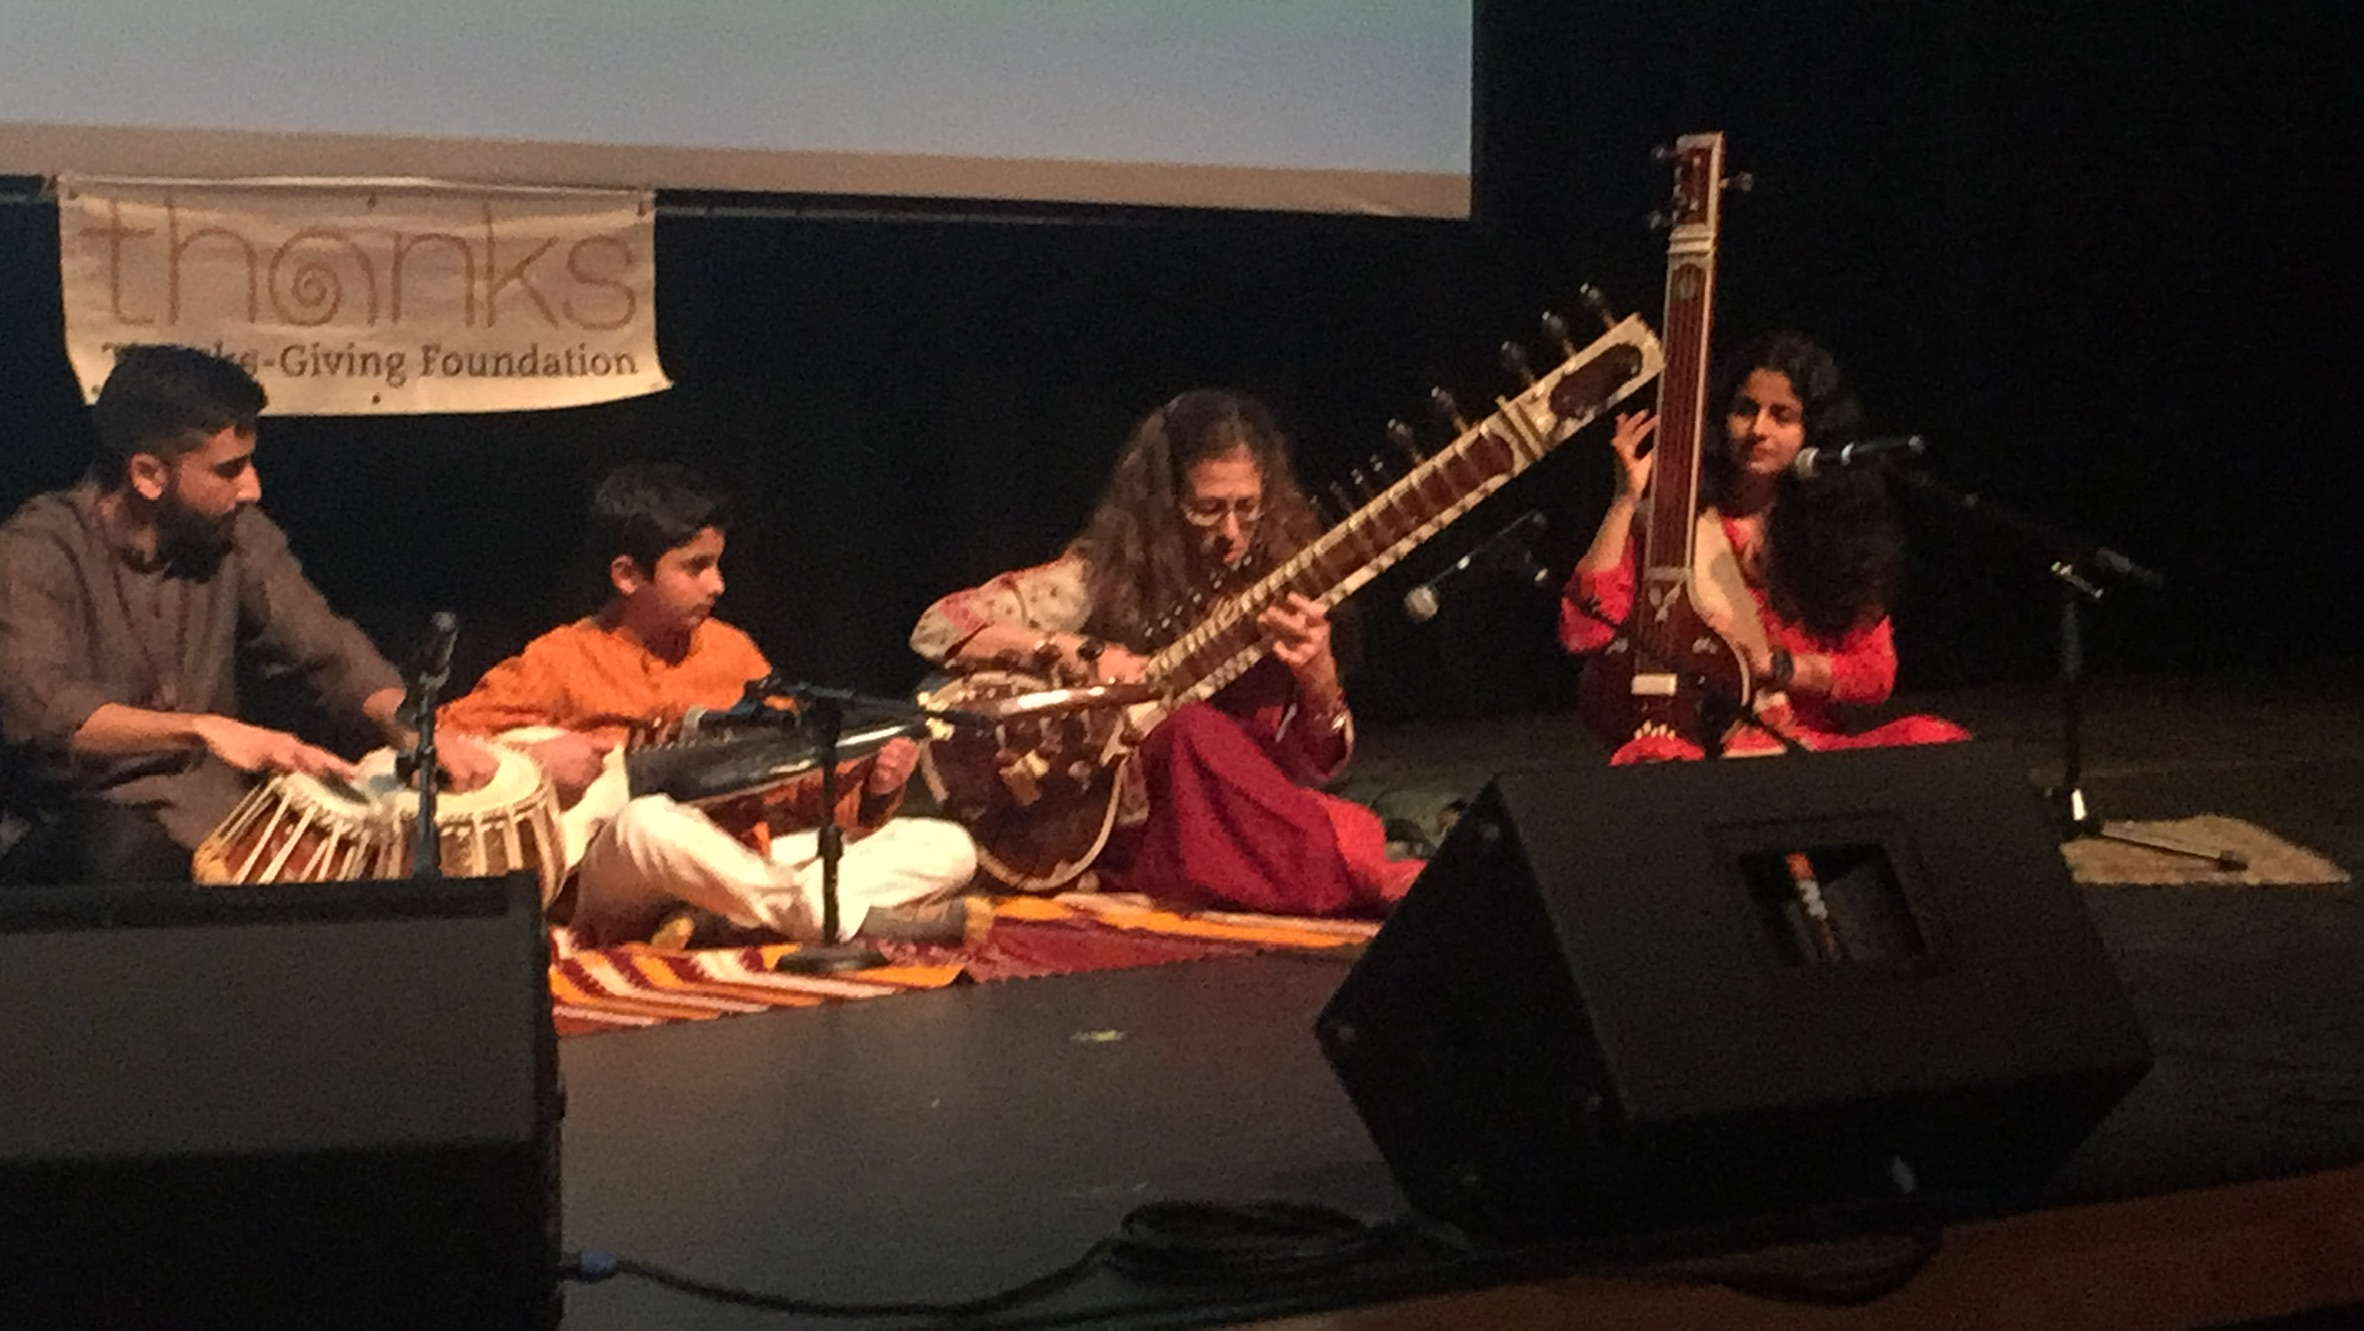 Paarth Kuntawala, Neel Sachdev (learning sarode), Amie, Dr. Malavika Sachdev (learning vocal) perform at Festival of Faiths, in Dallas - 2018